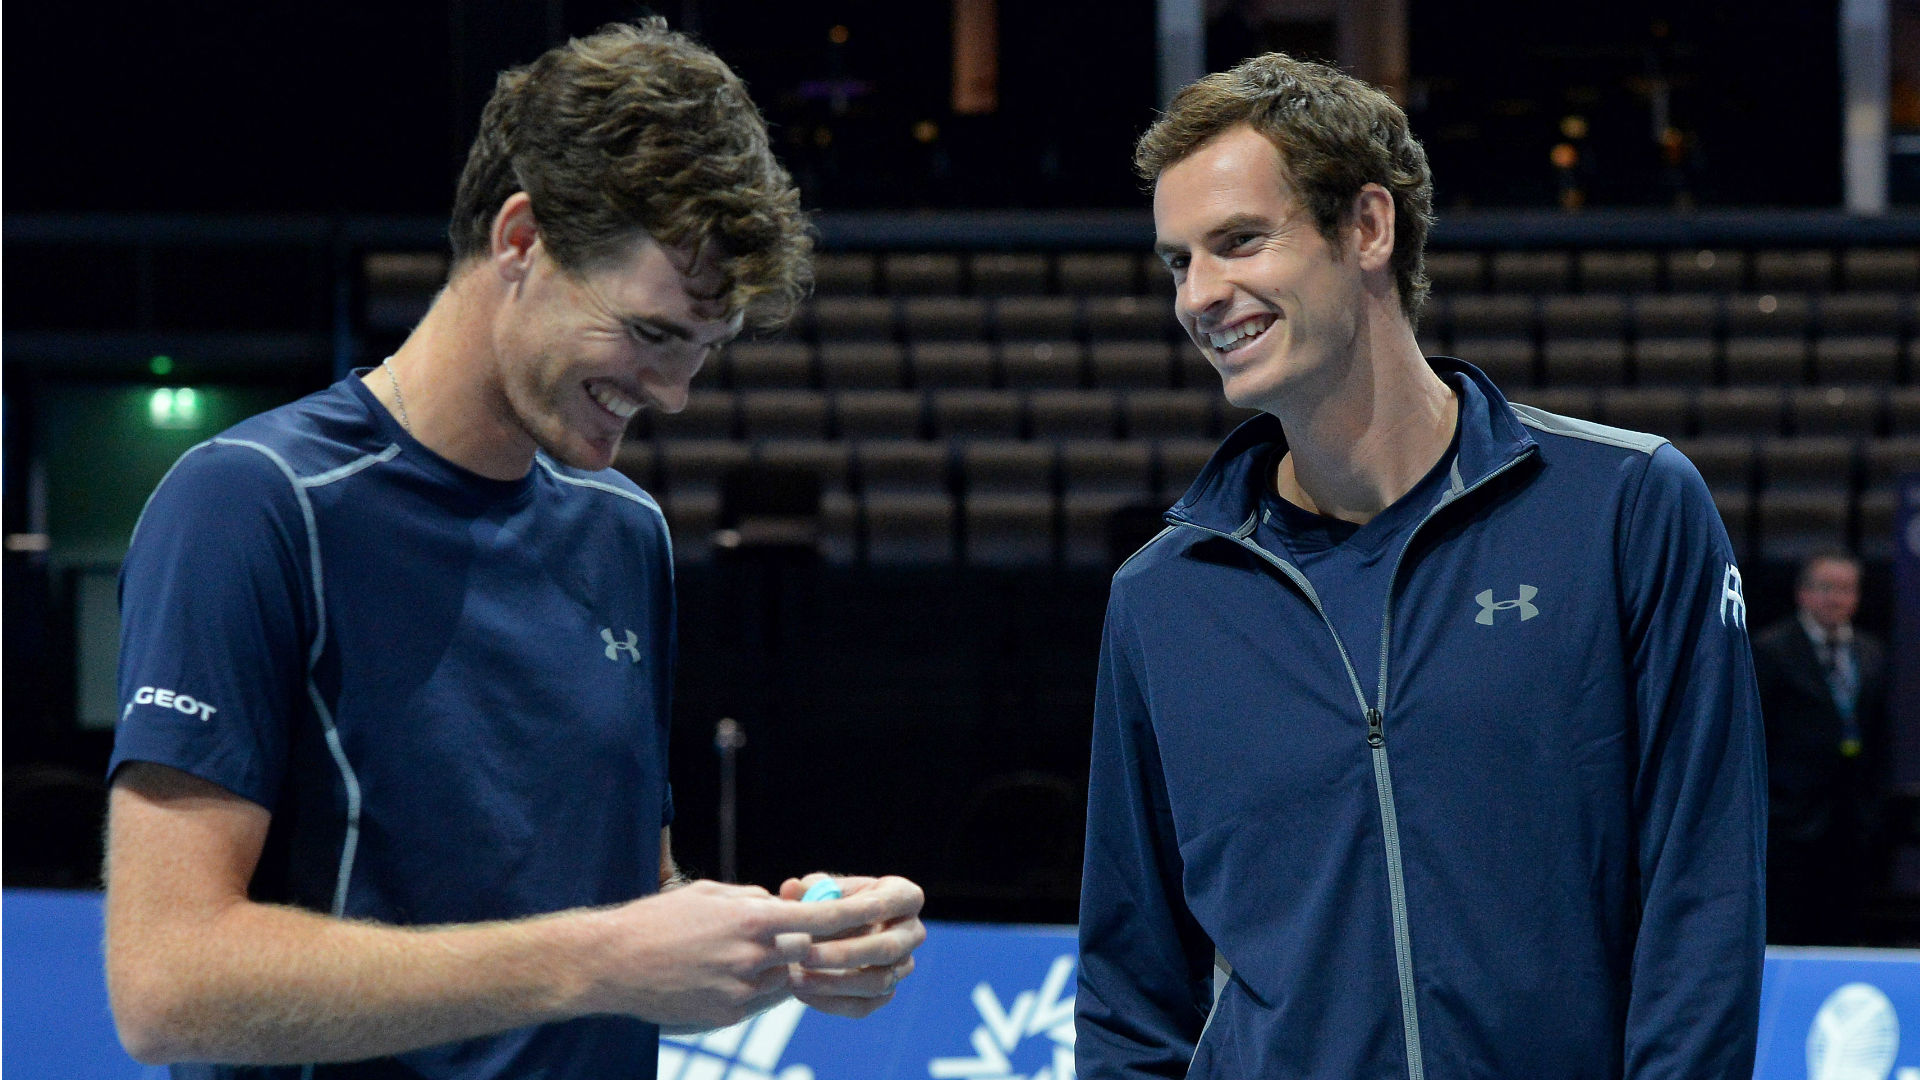 The Murray brother partnership will be reformed at the Washington Open next week as Andy teams up with defending doubles champion Jamie.